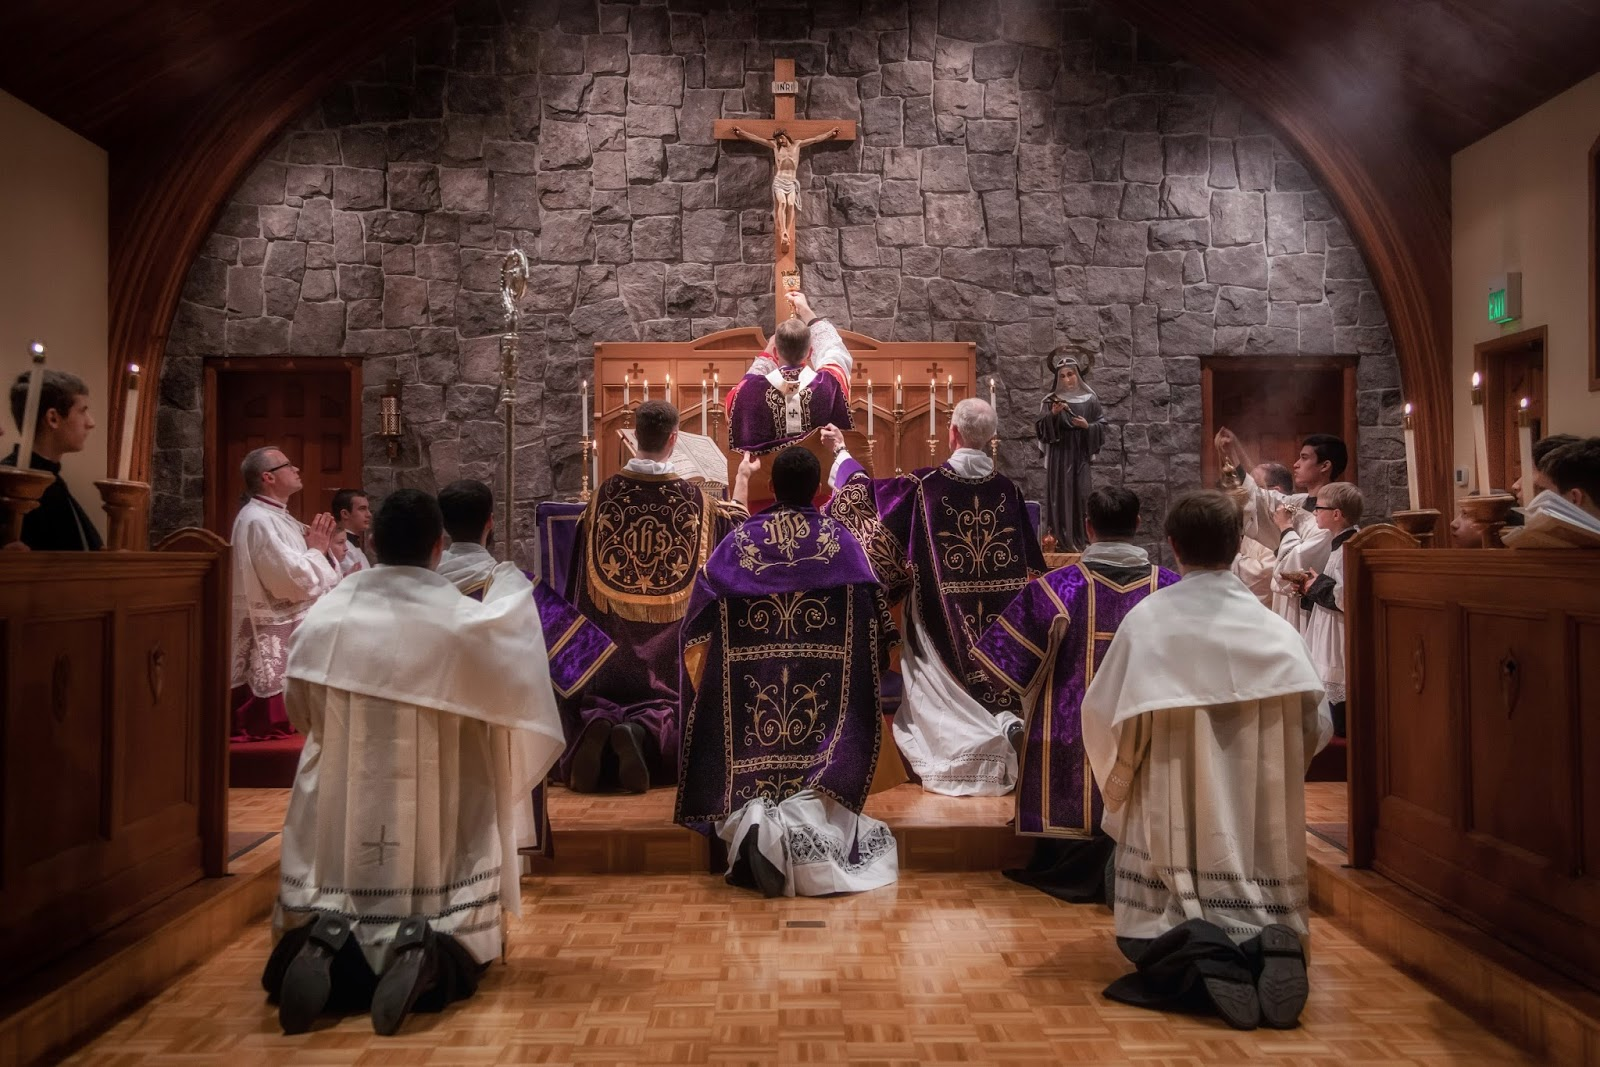 DAILY TRADITIONAL LATIN MASS RETURNS TO THE ARCHDIOCESE OF